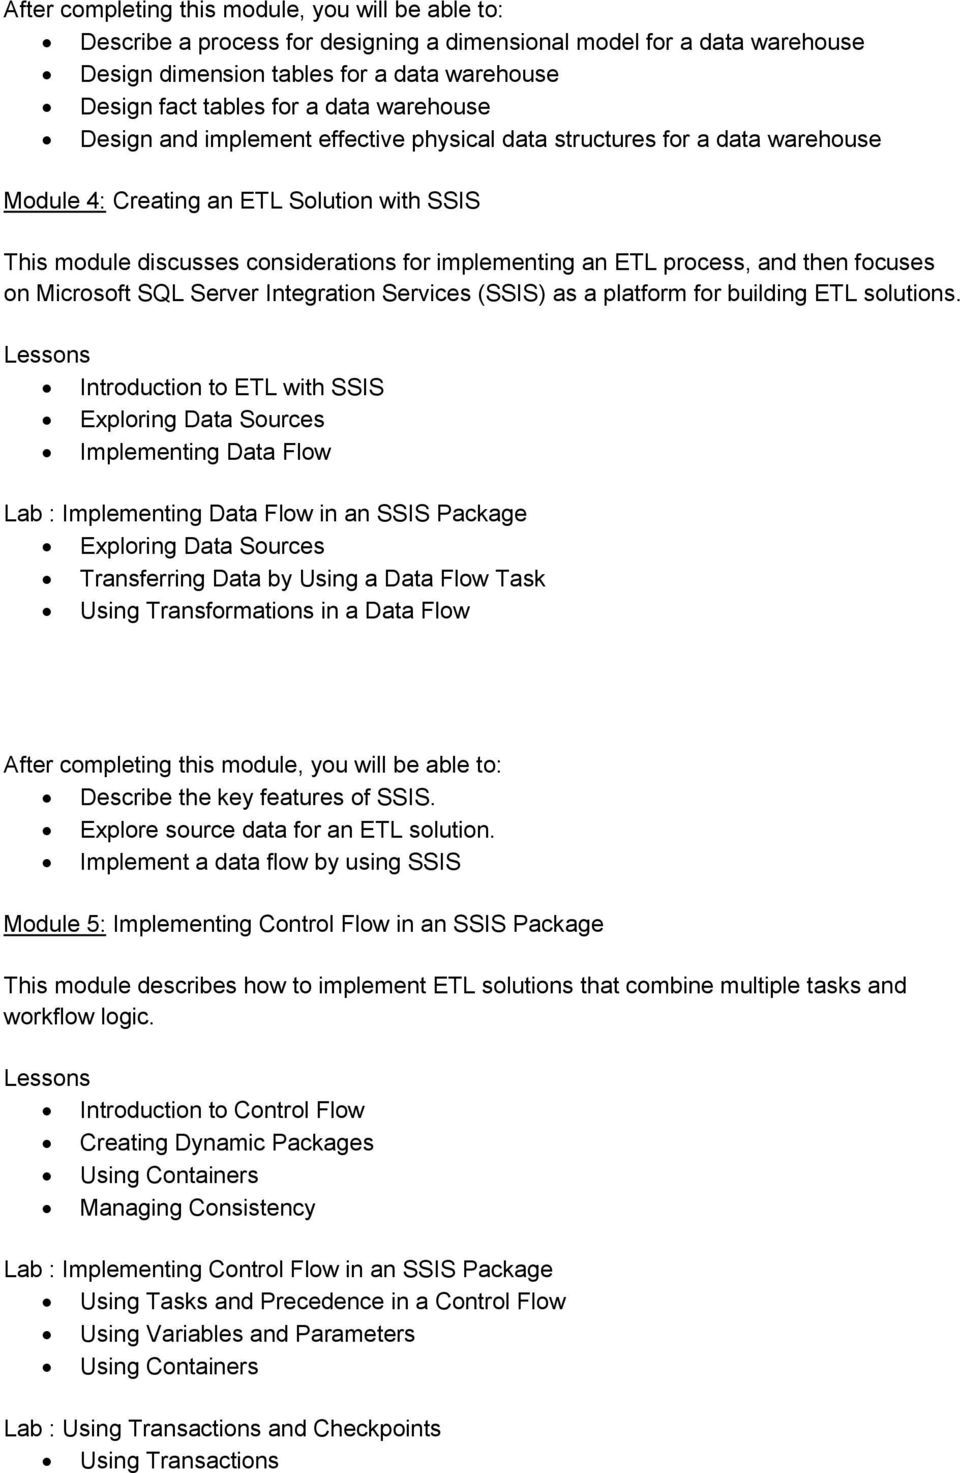 Course 20463:Implementing a Data Warehouse with Microsoft SQL Server